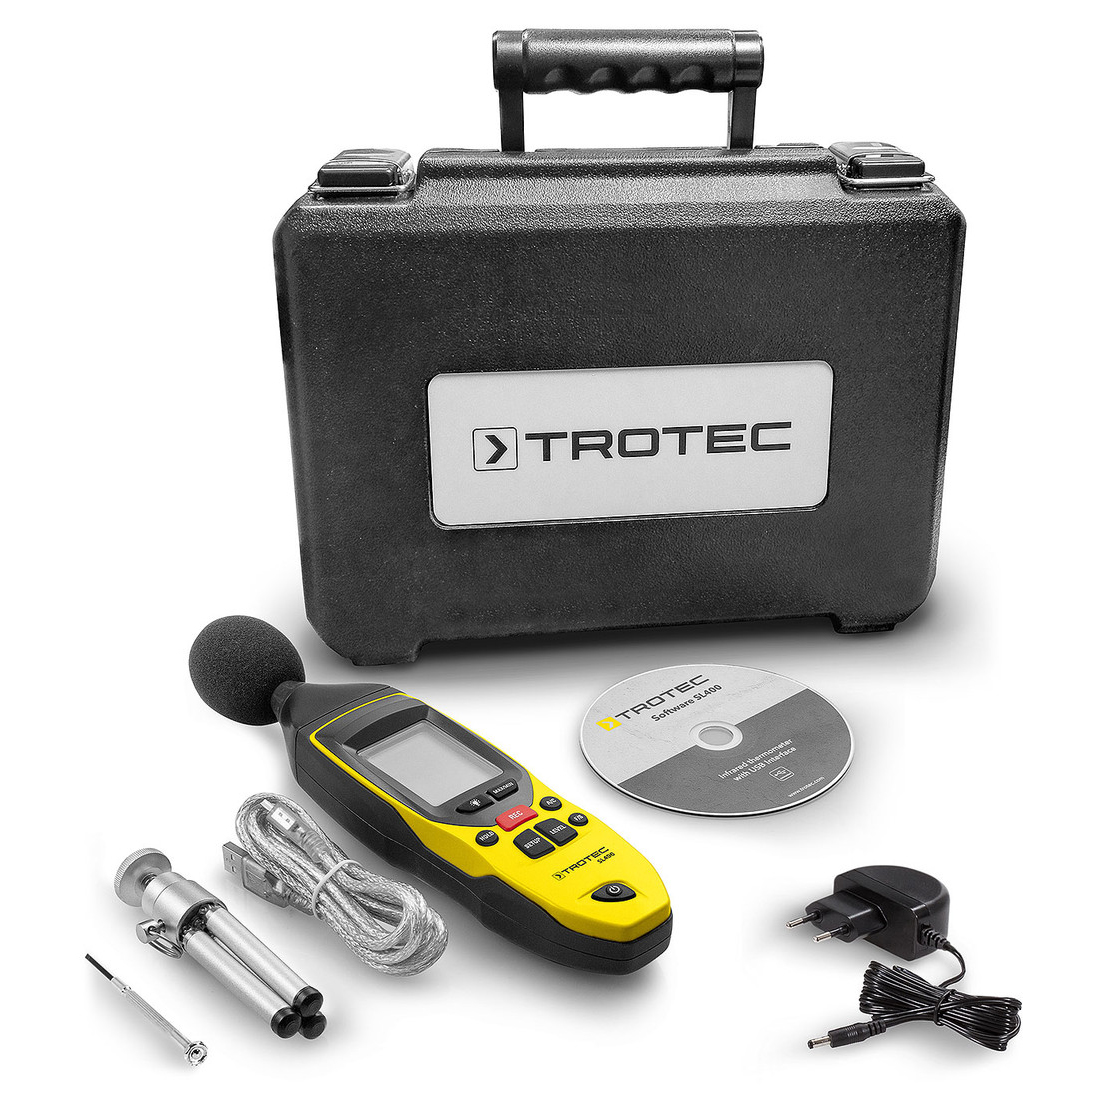 High Voltage Measuring Tool : Trotec sound level measuring device sl all measure